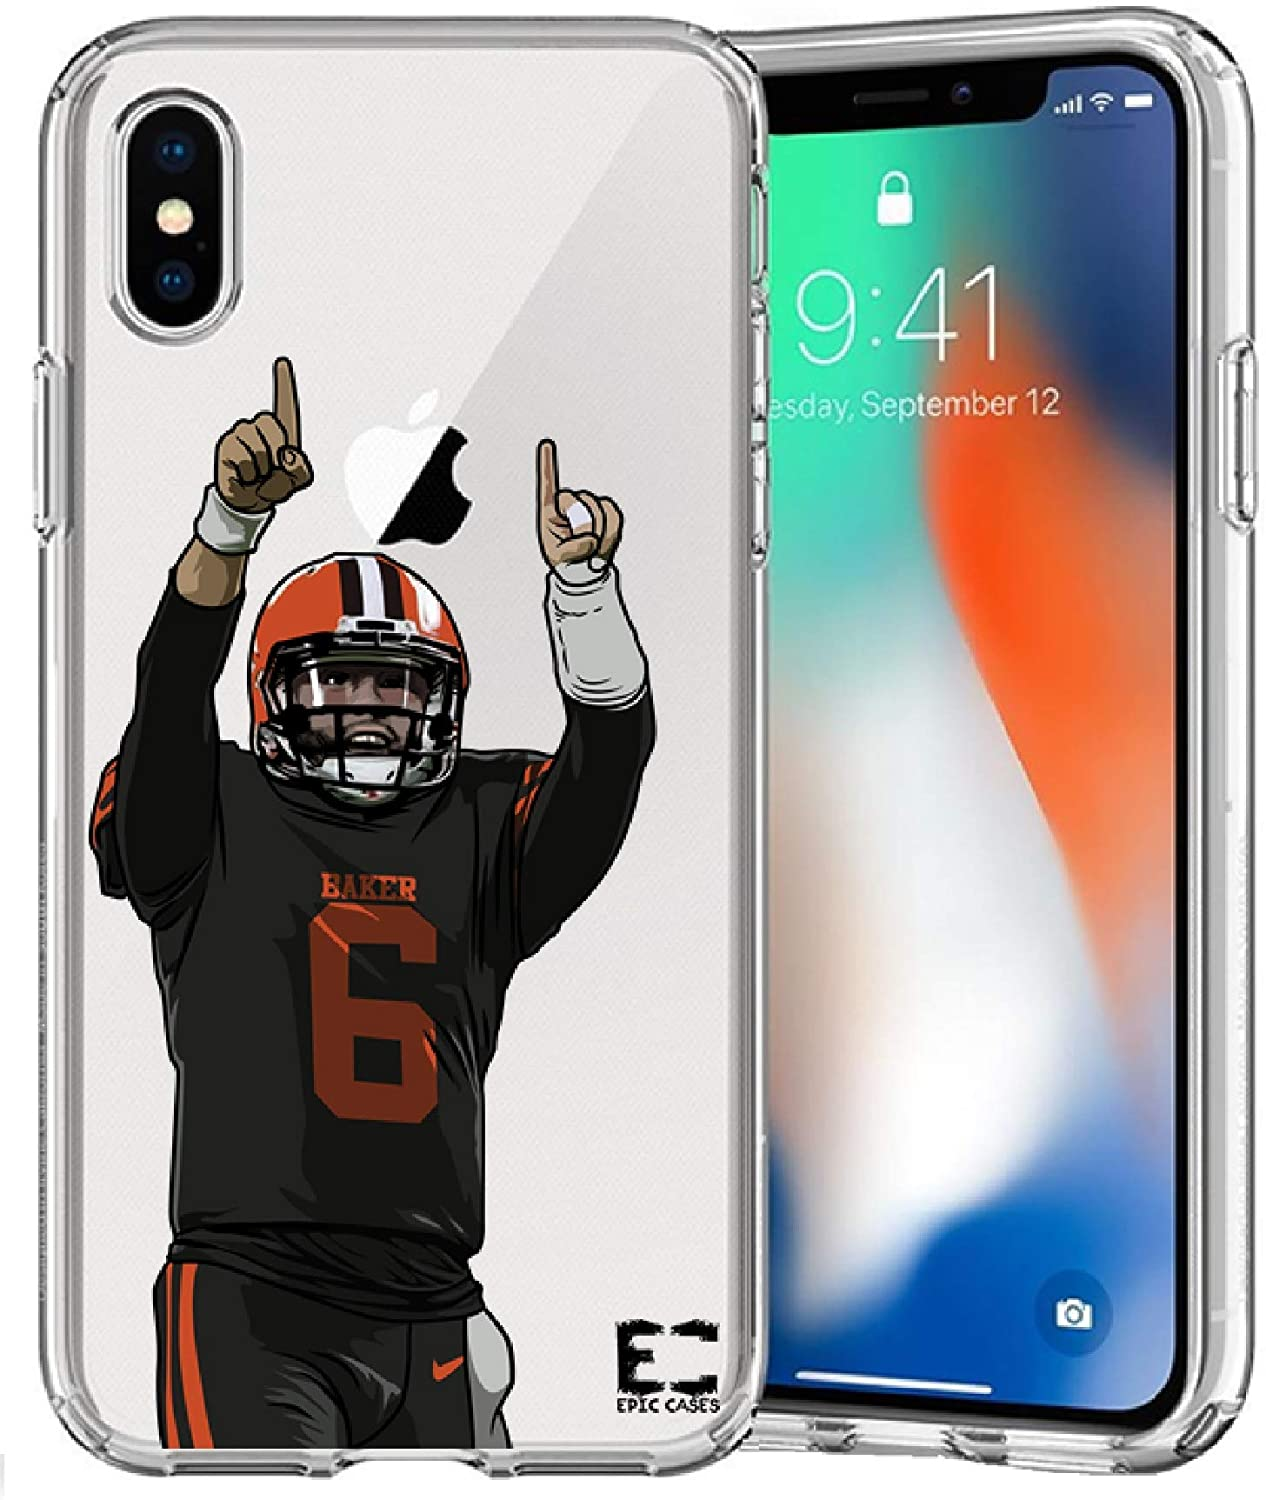 iPhone X iPhone Xs Case Epic Cases Ultra Slim Crystal Clear Football Series Soft Transparent TPU Case Cover Apple (Baker Browns, iPhone X/XS)